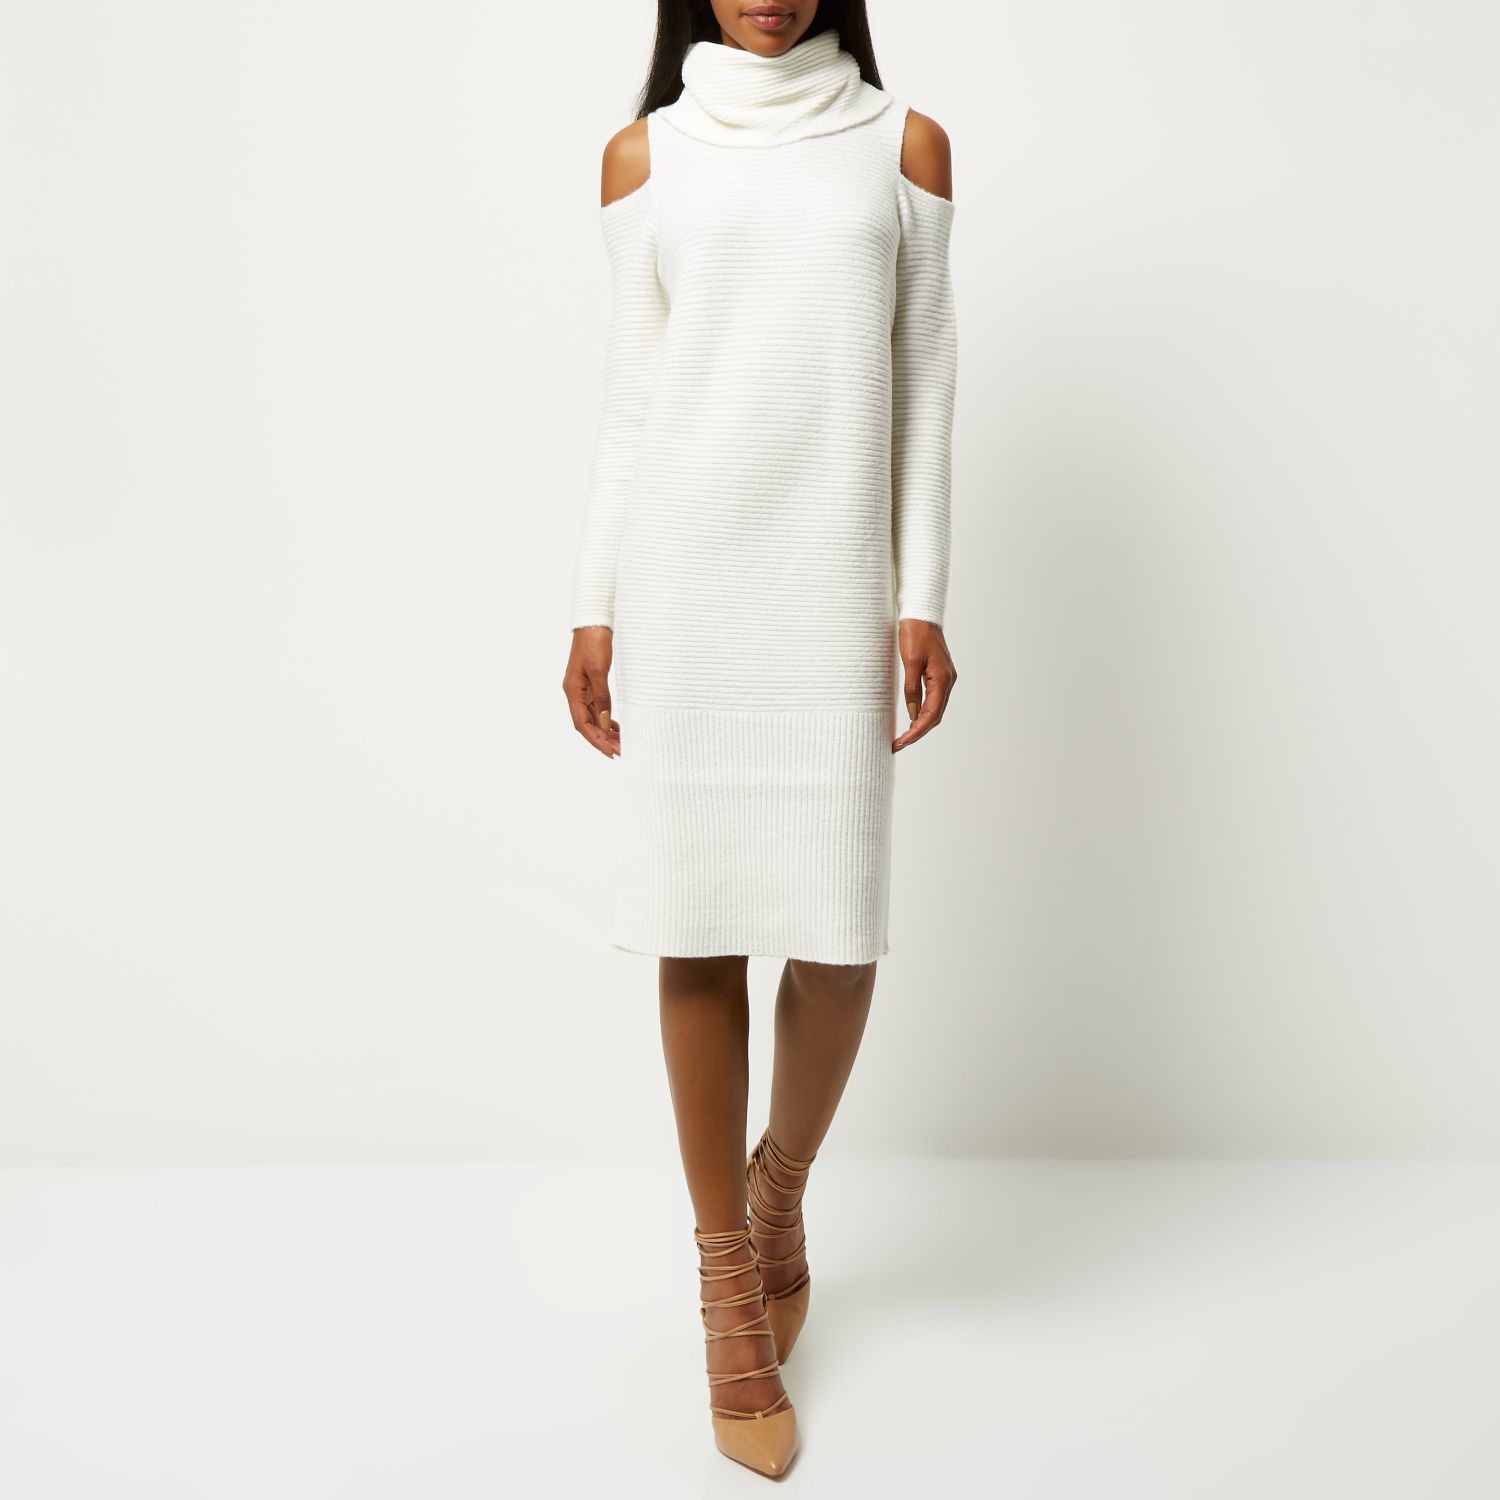 86b638642c6 River Island Cream Knitted Cold Shoulder Jumper Dress in Natural - Lyst